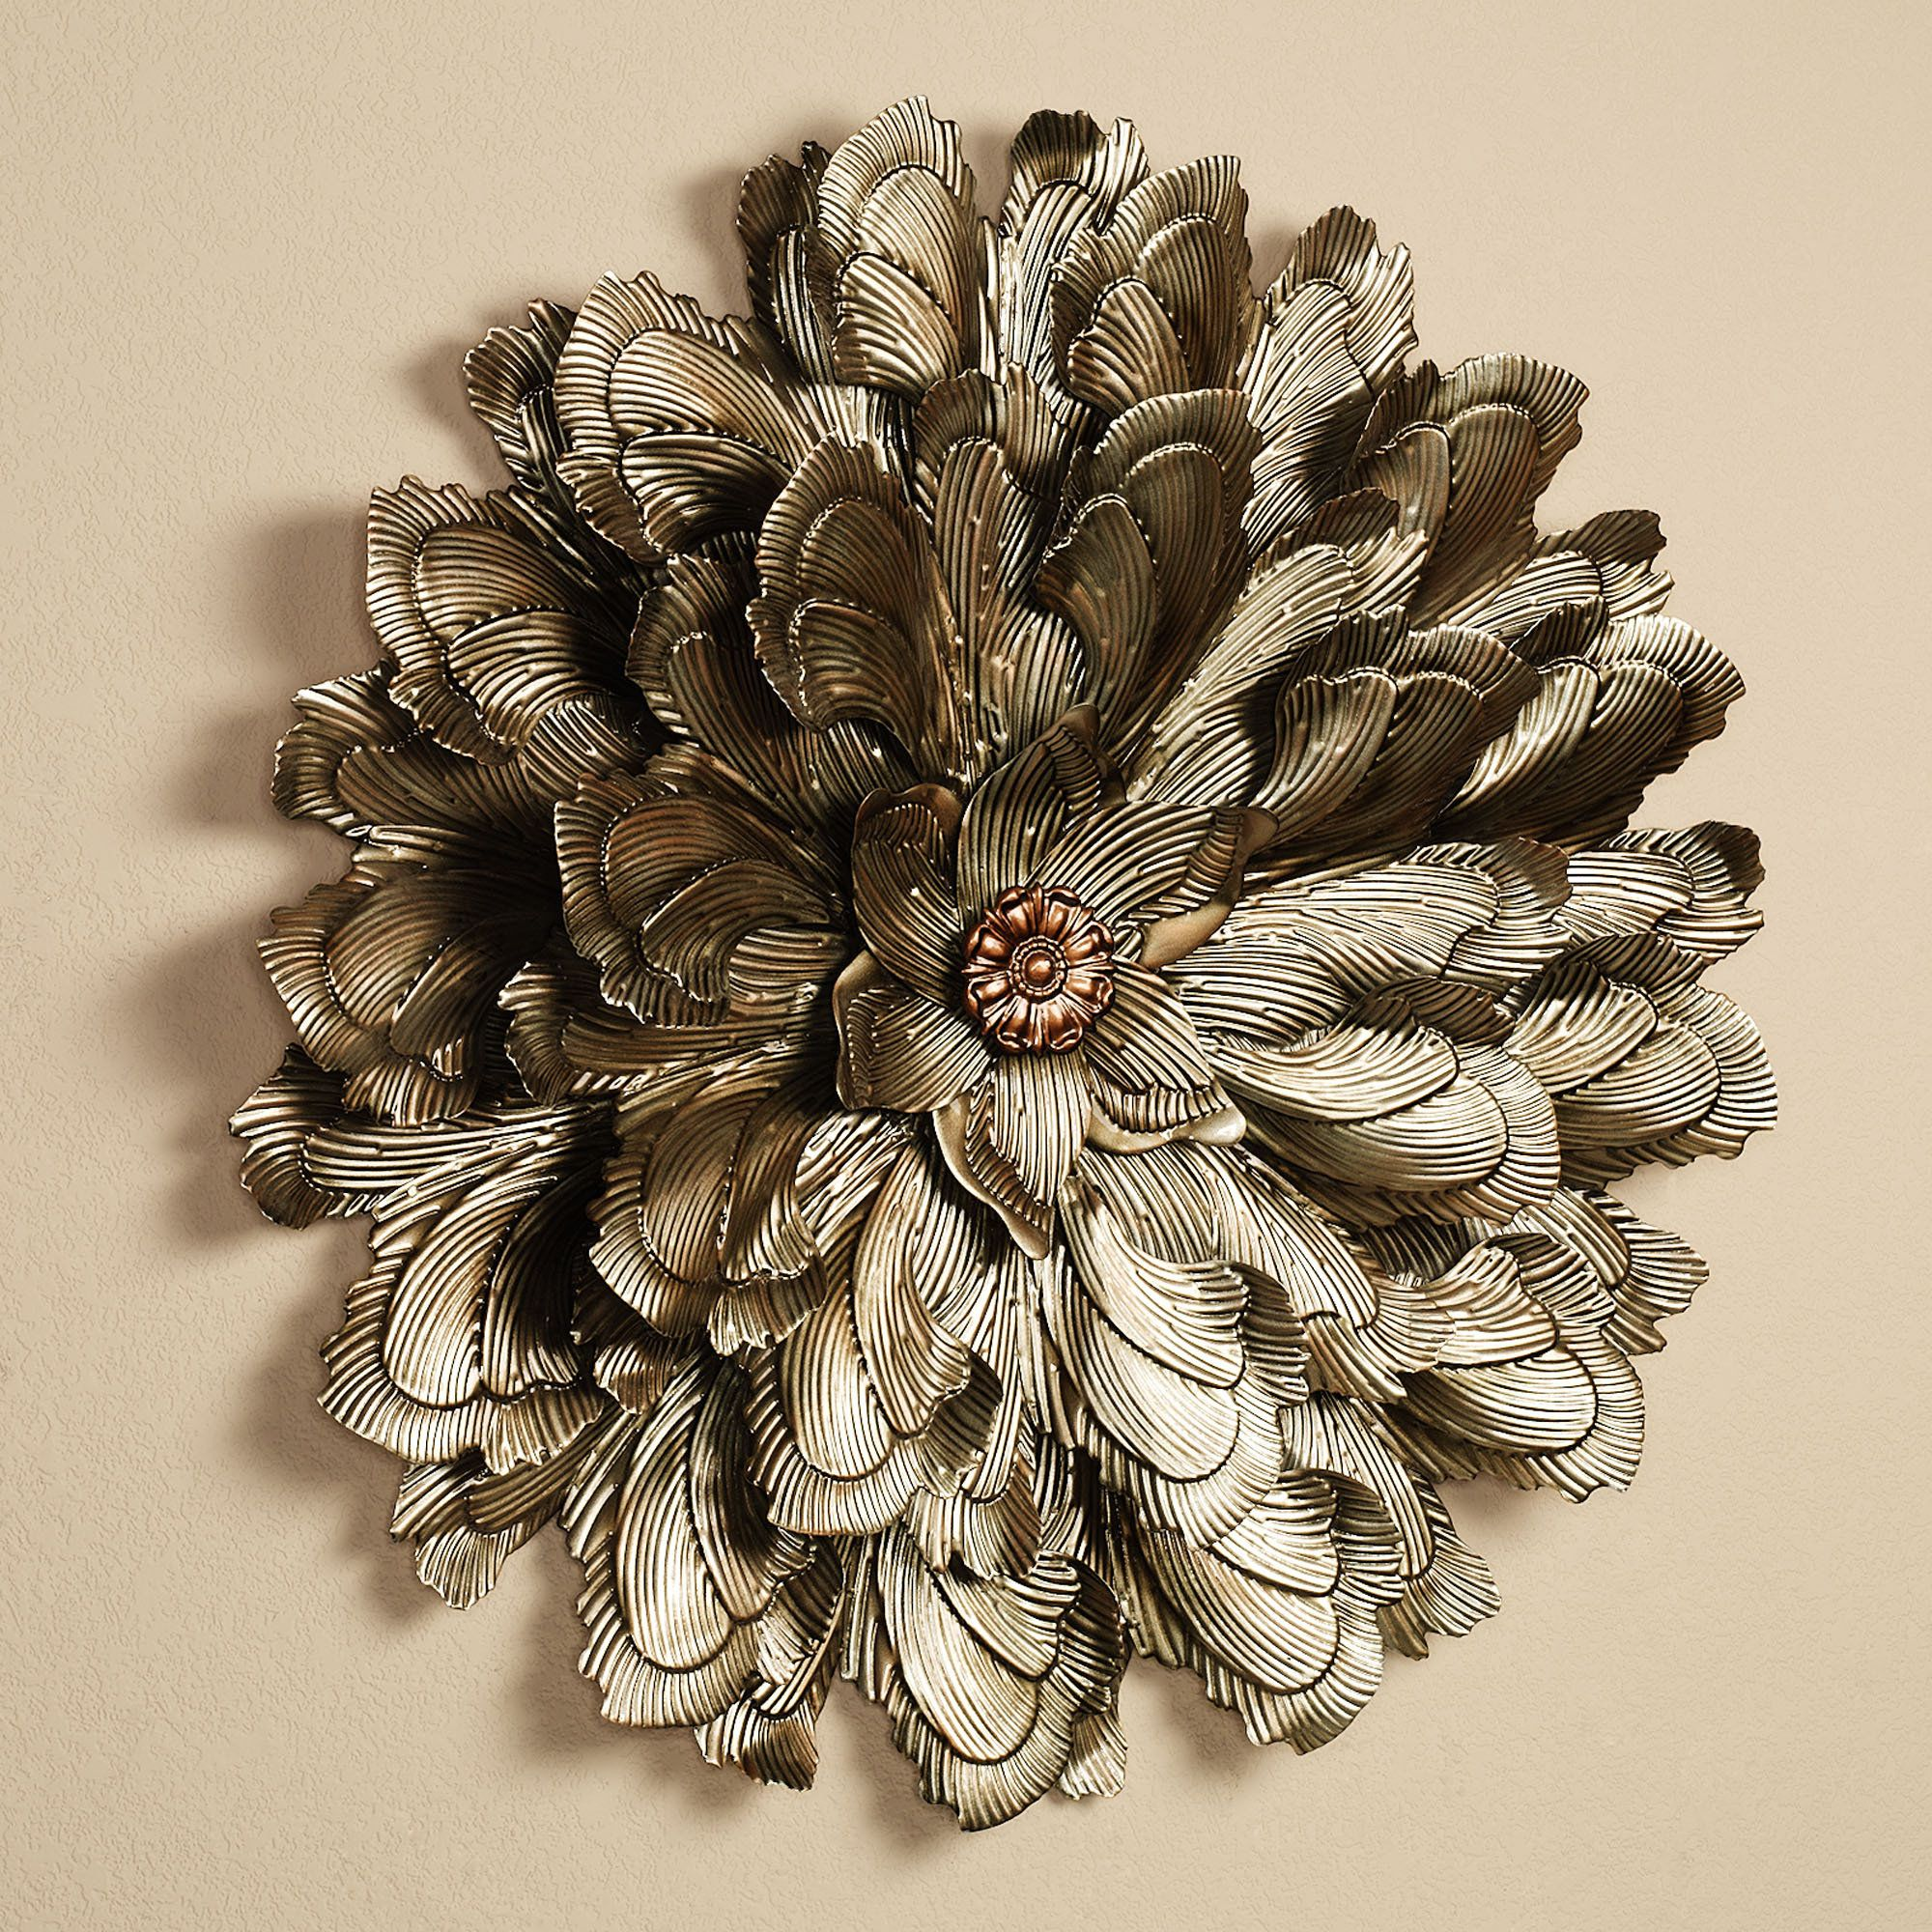 Delicate Flower Blossom Metal Wall Sculpture Wall